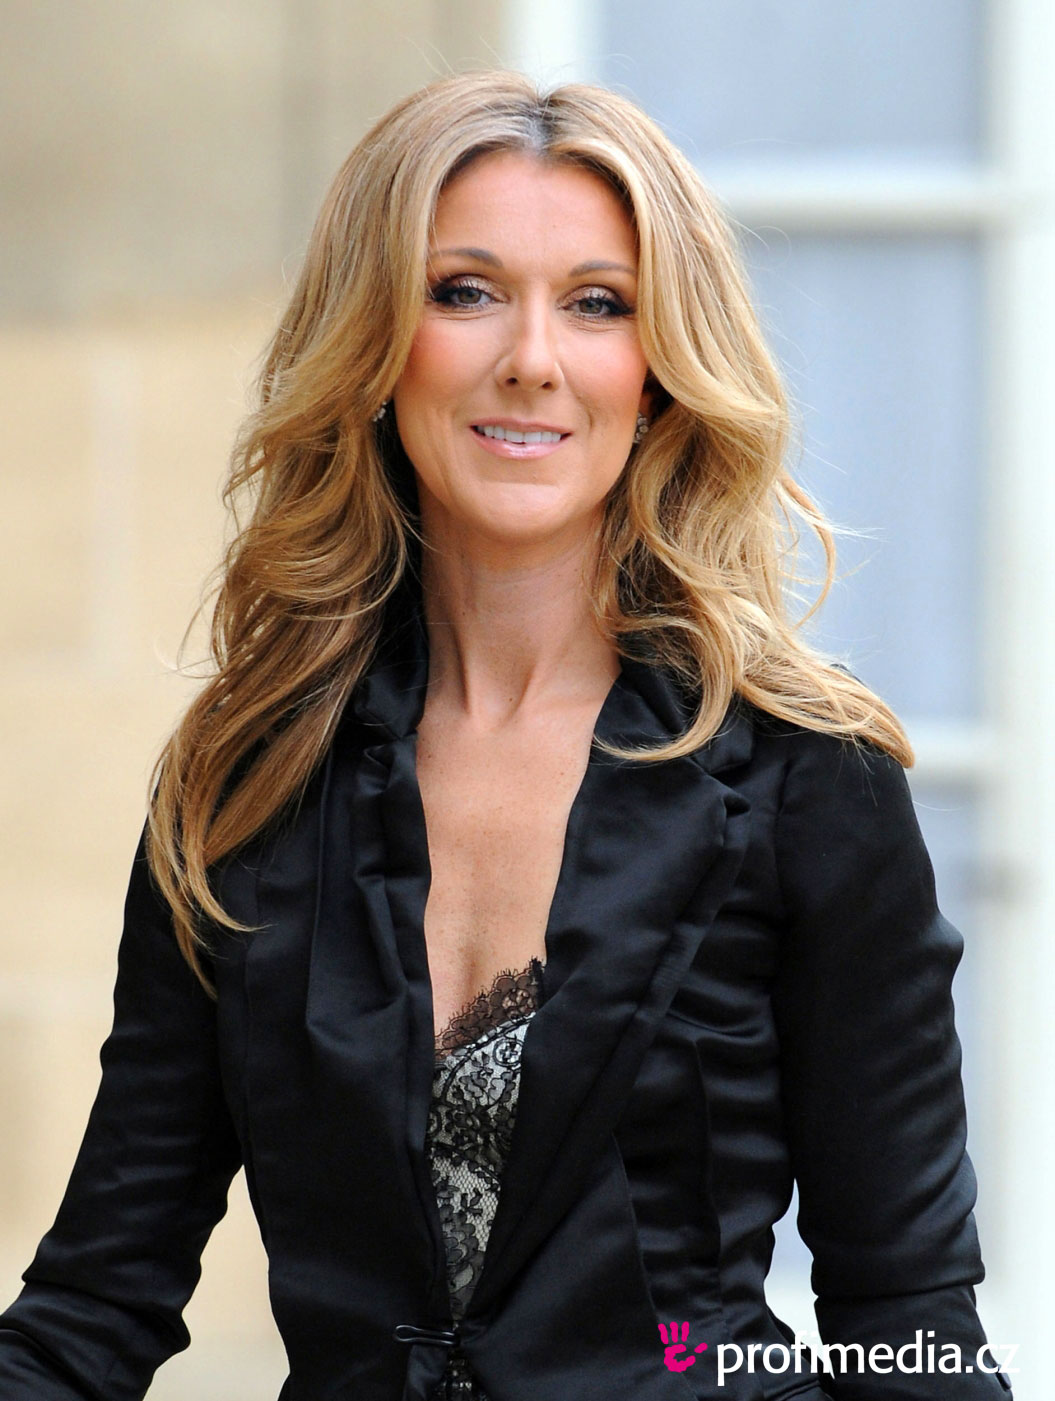 Celine Dion Hairstyle Easyhairstyler